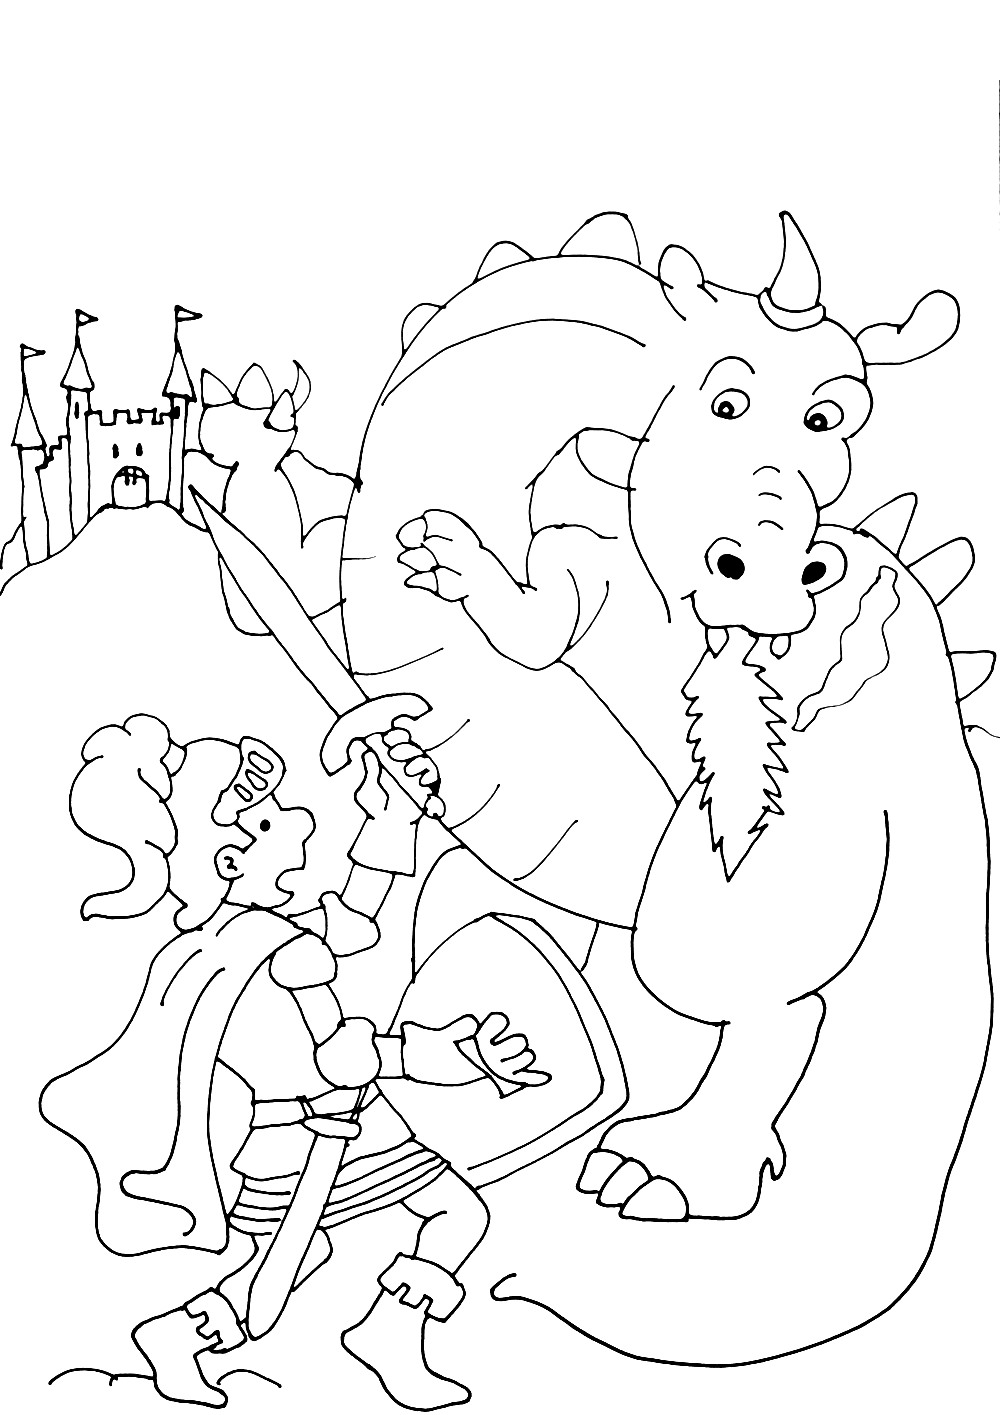 Chevaliers dragons 1 coloriage chevaliers et de dragons coloriages pour enfants - Dessins chevaliers ...